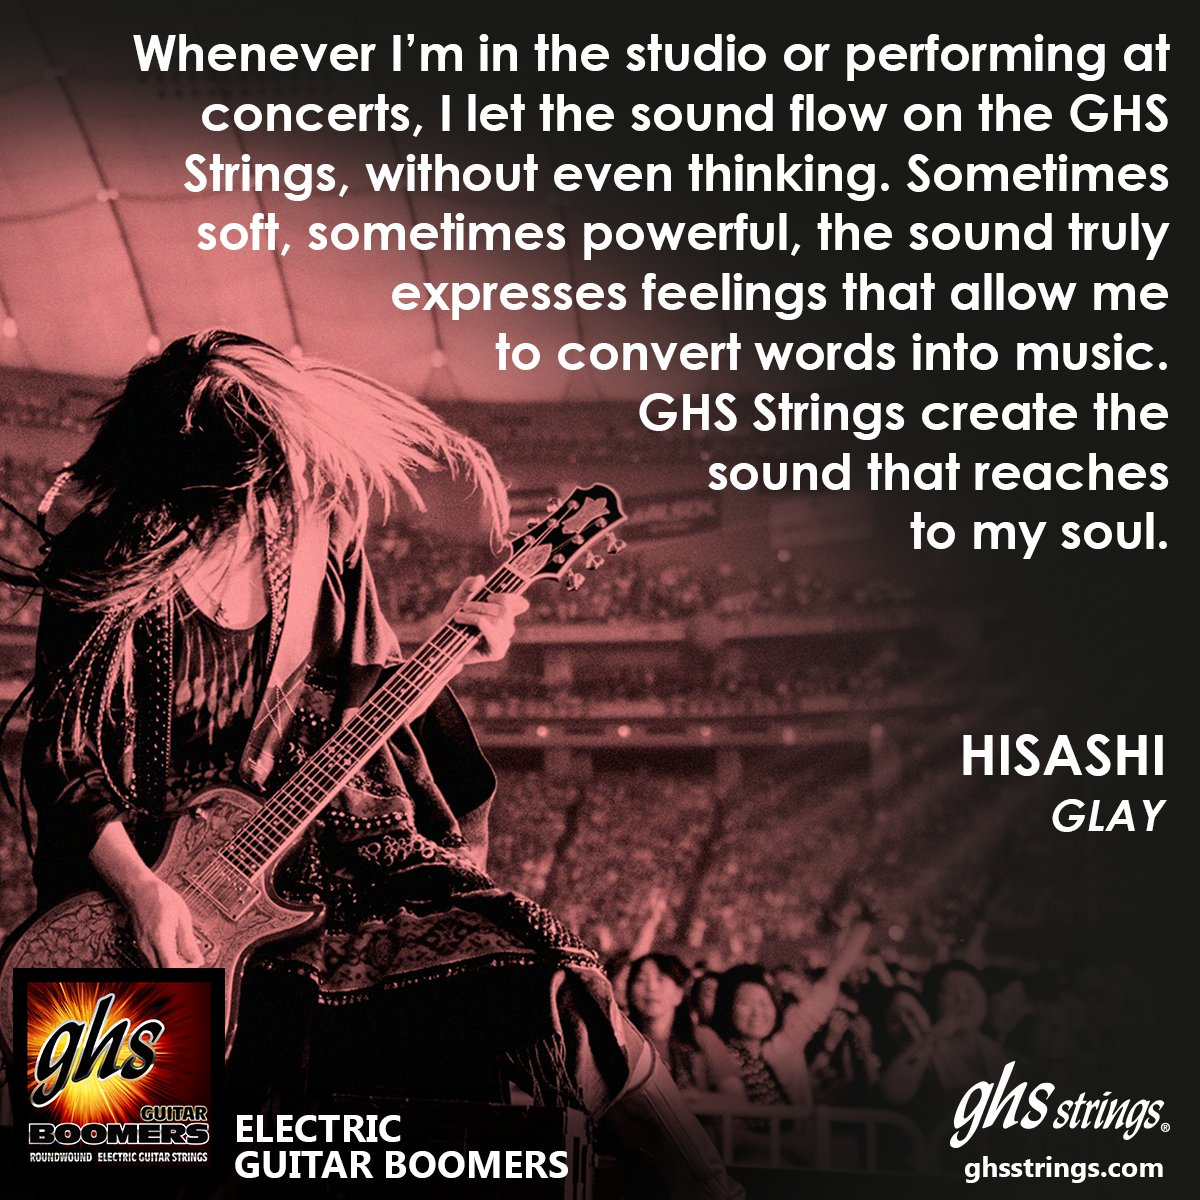 Here's the newest addition to #GHSArtistQuotes - @HISASHI_! @GHSstrings #GHS #GHSstrings @glay_official #GLAY #rock https://t.co/r0WgKprj7U